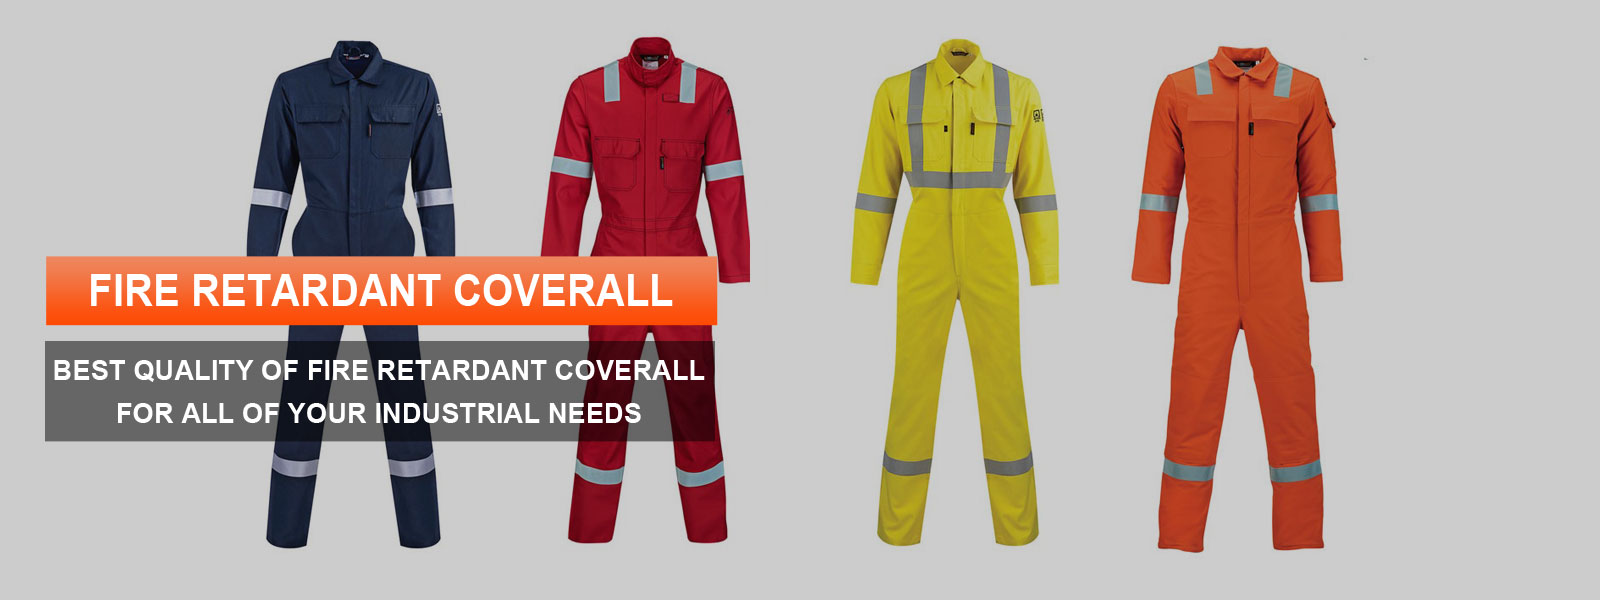 Fire Retardant Coverall Manufacturers in Sikkim